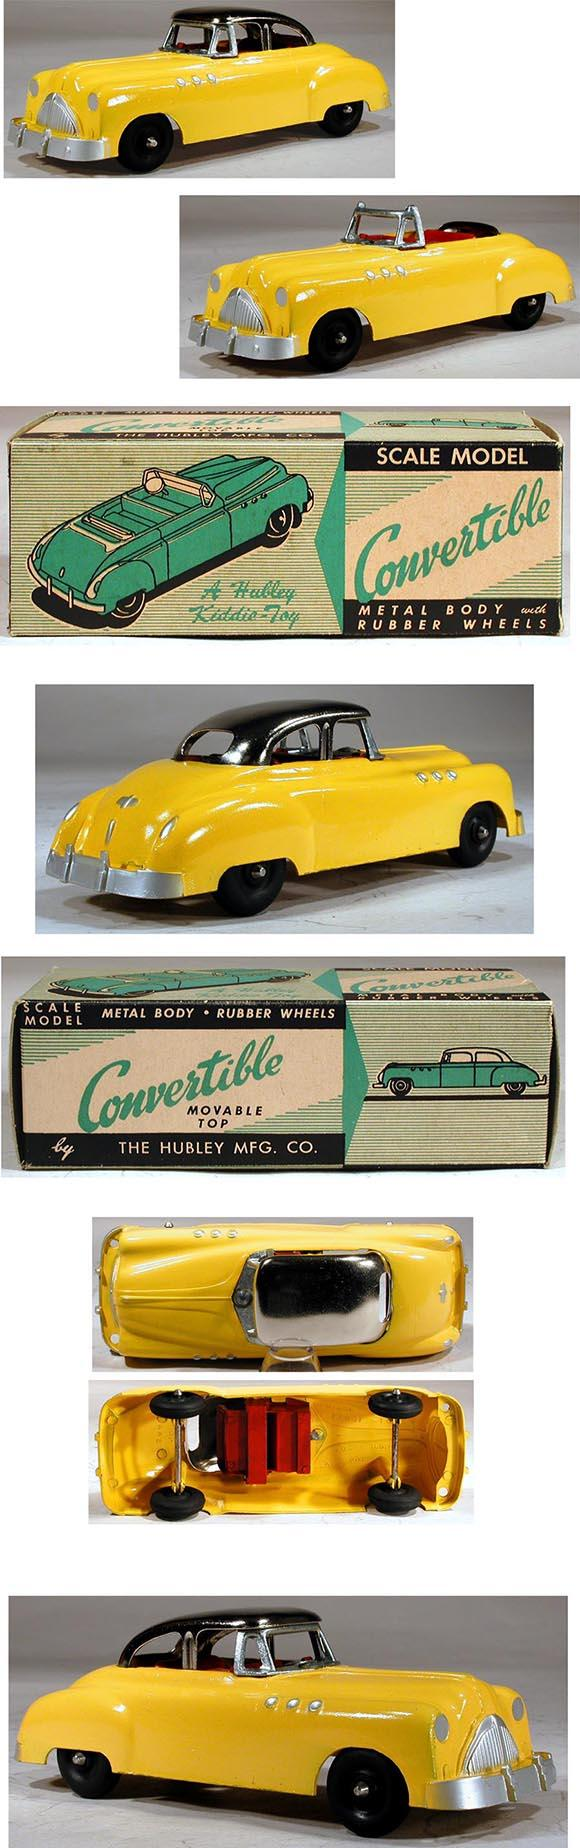 1954 Hubley, No. 465 Buick Convertible with Movable Top in Original Box